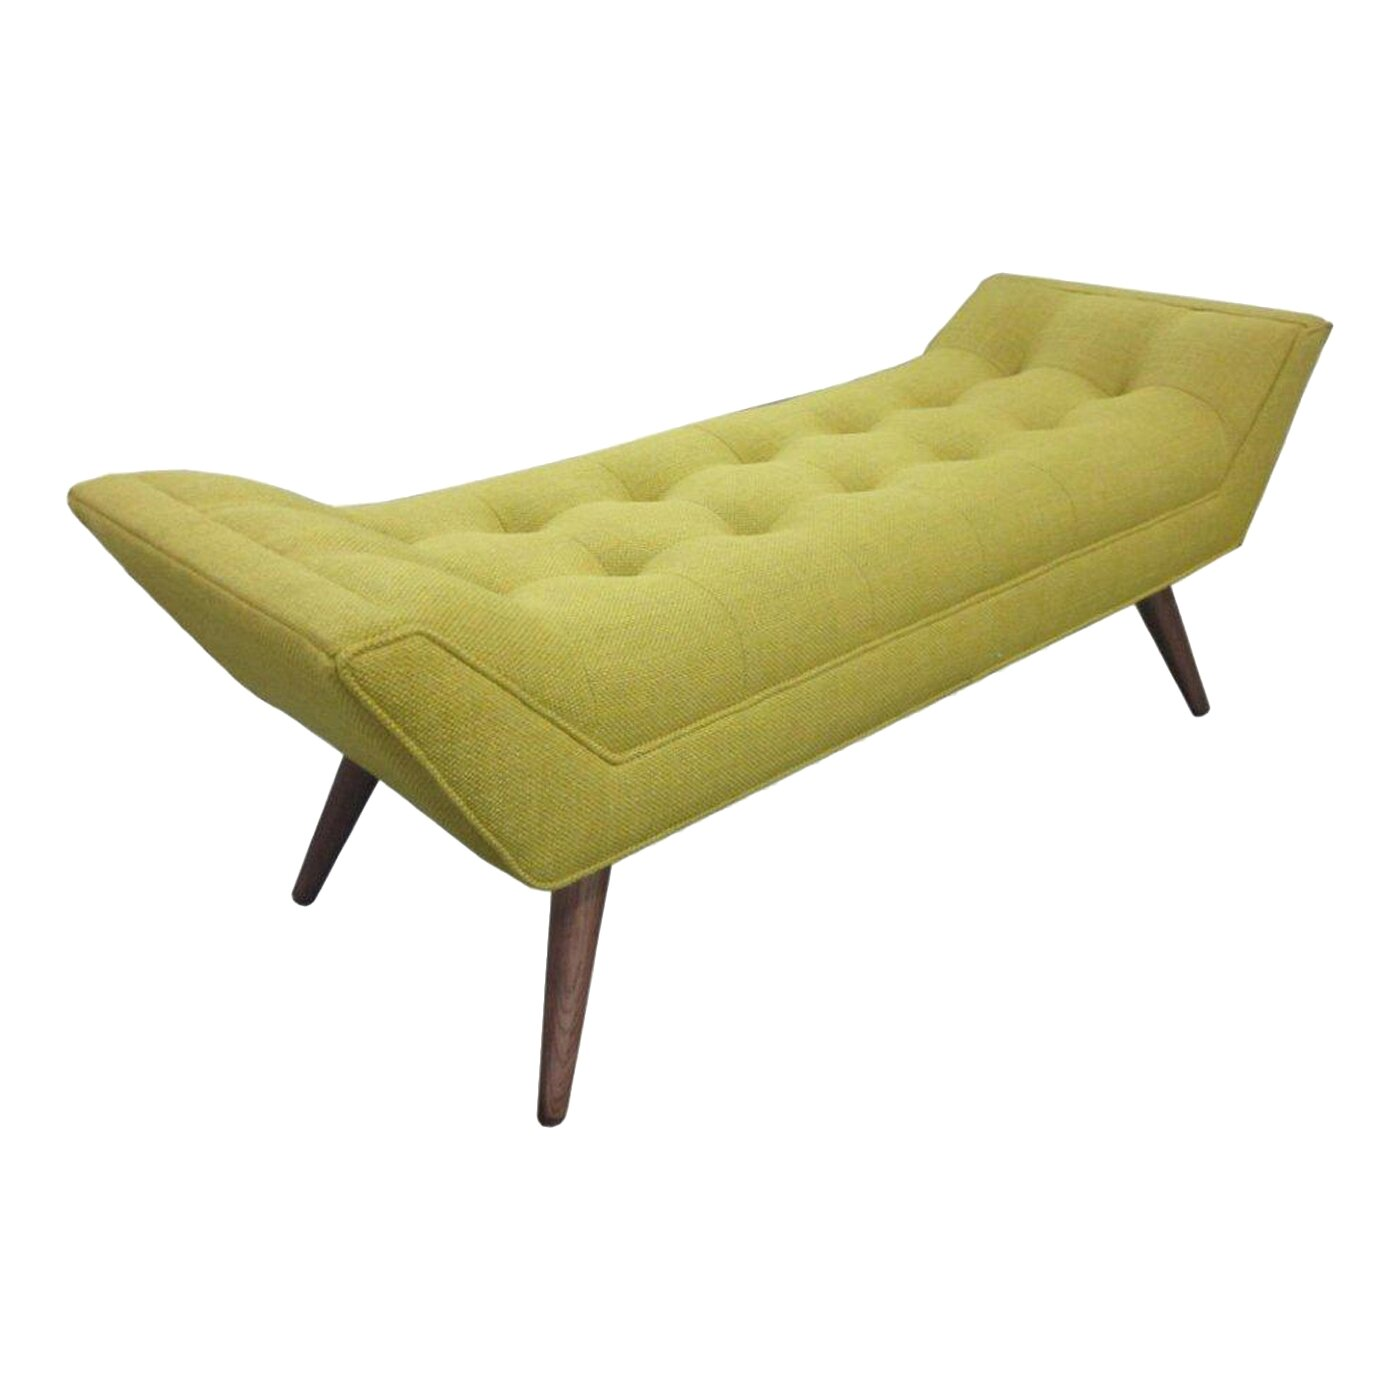 Jonathan adler whitaker upholstered bench reviews wayfair Upholstered benches